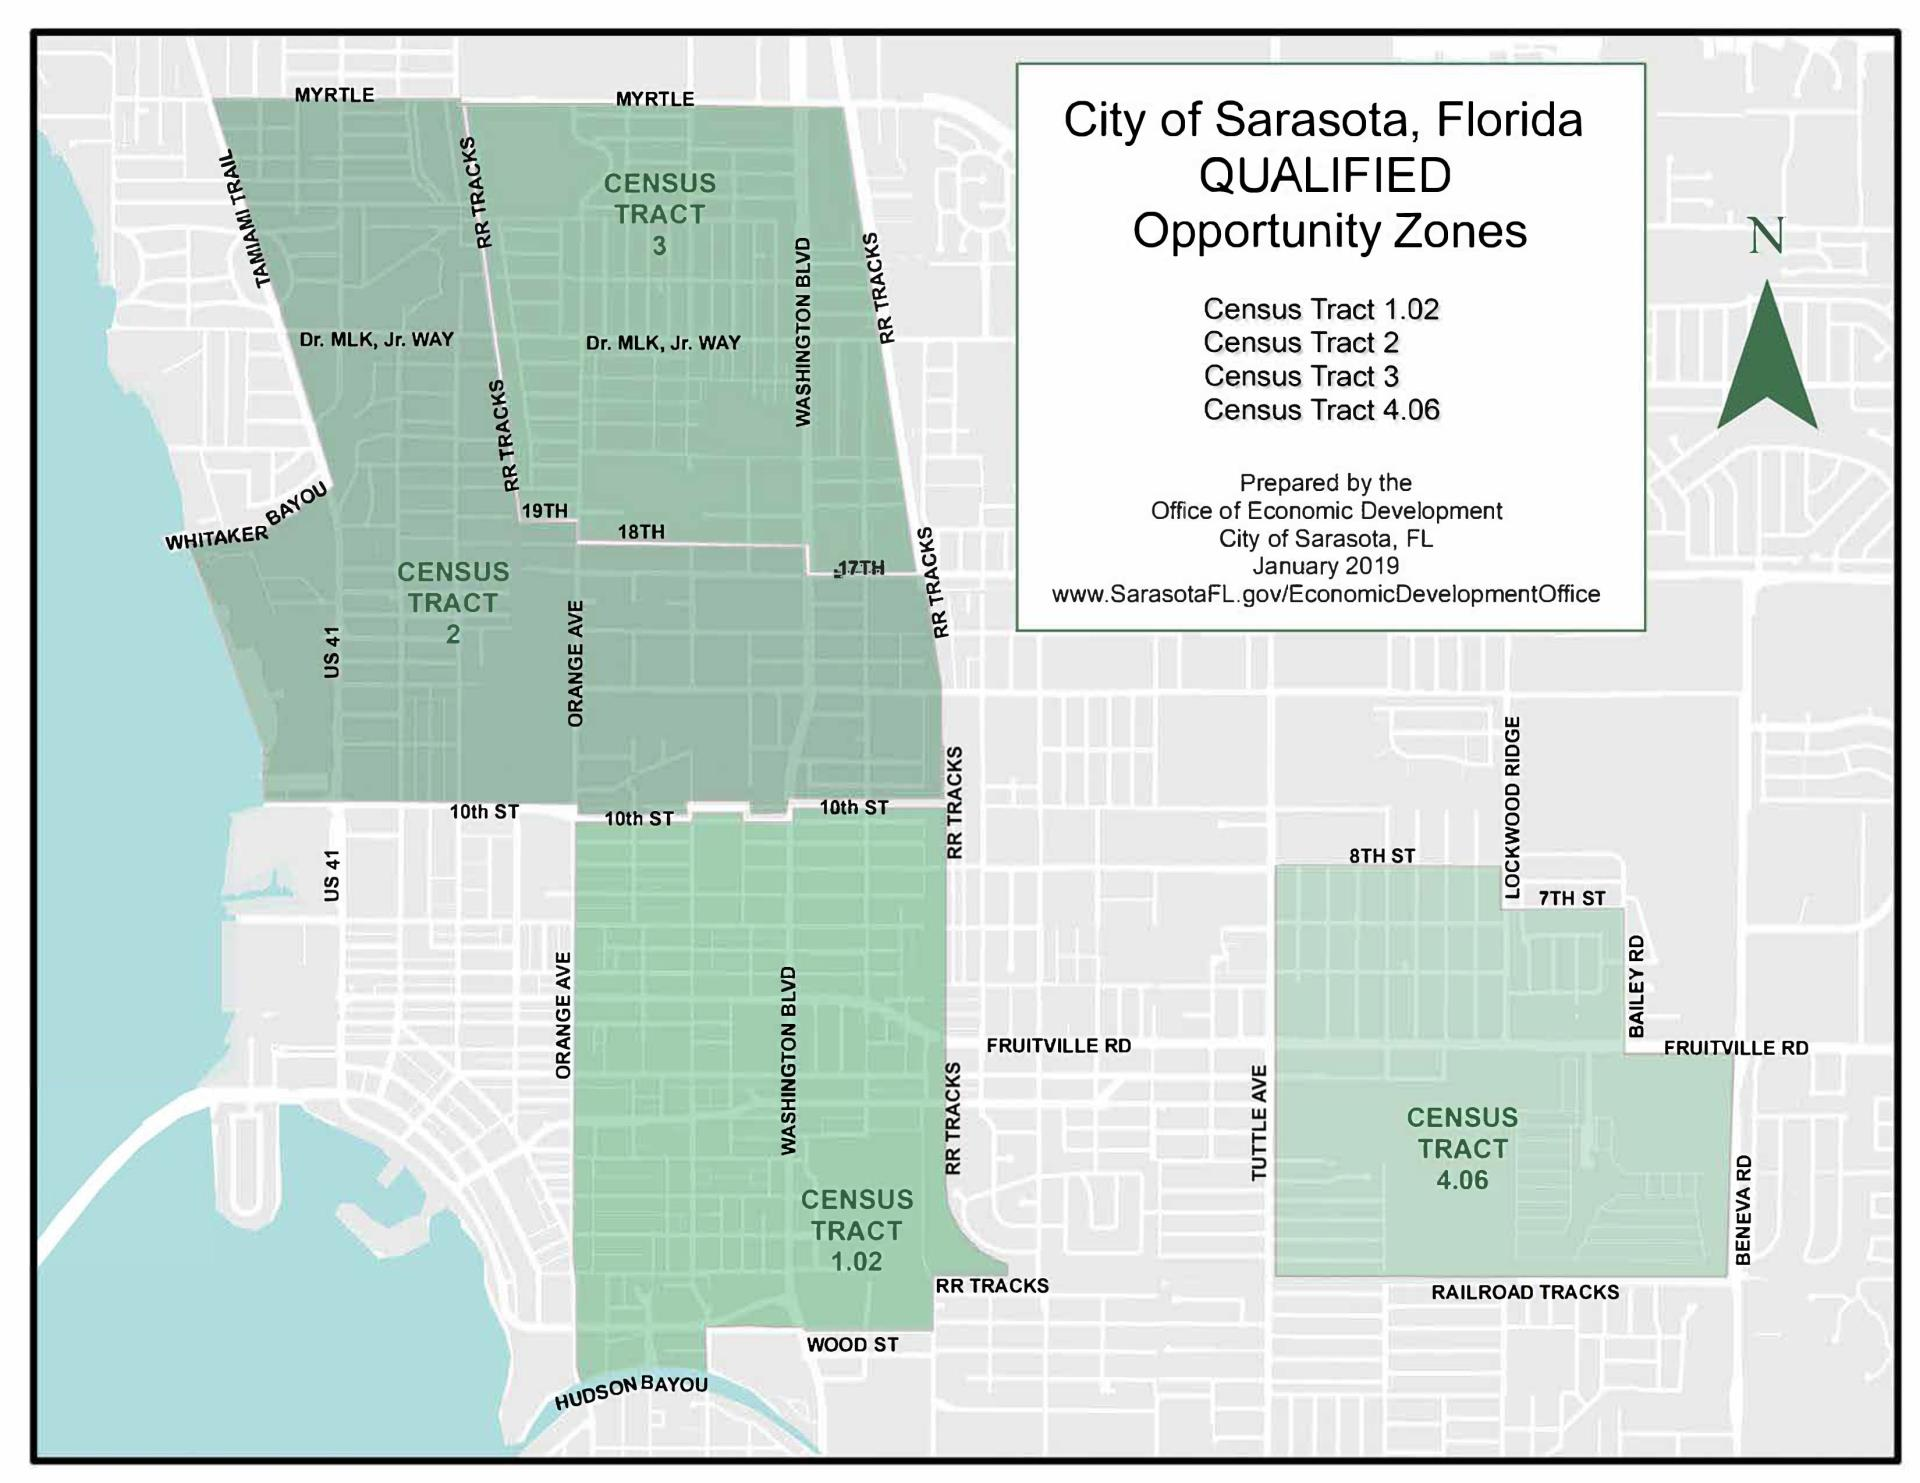 2019 City Qualified Opportunity Zones Map